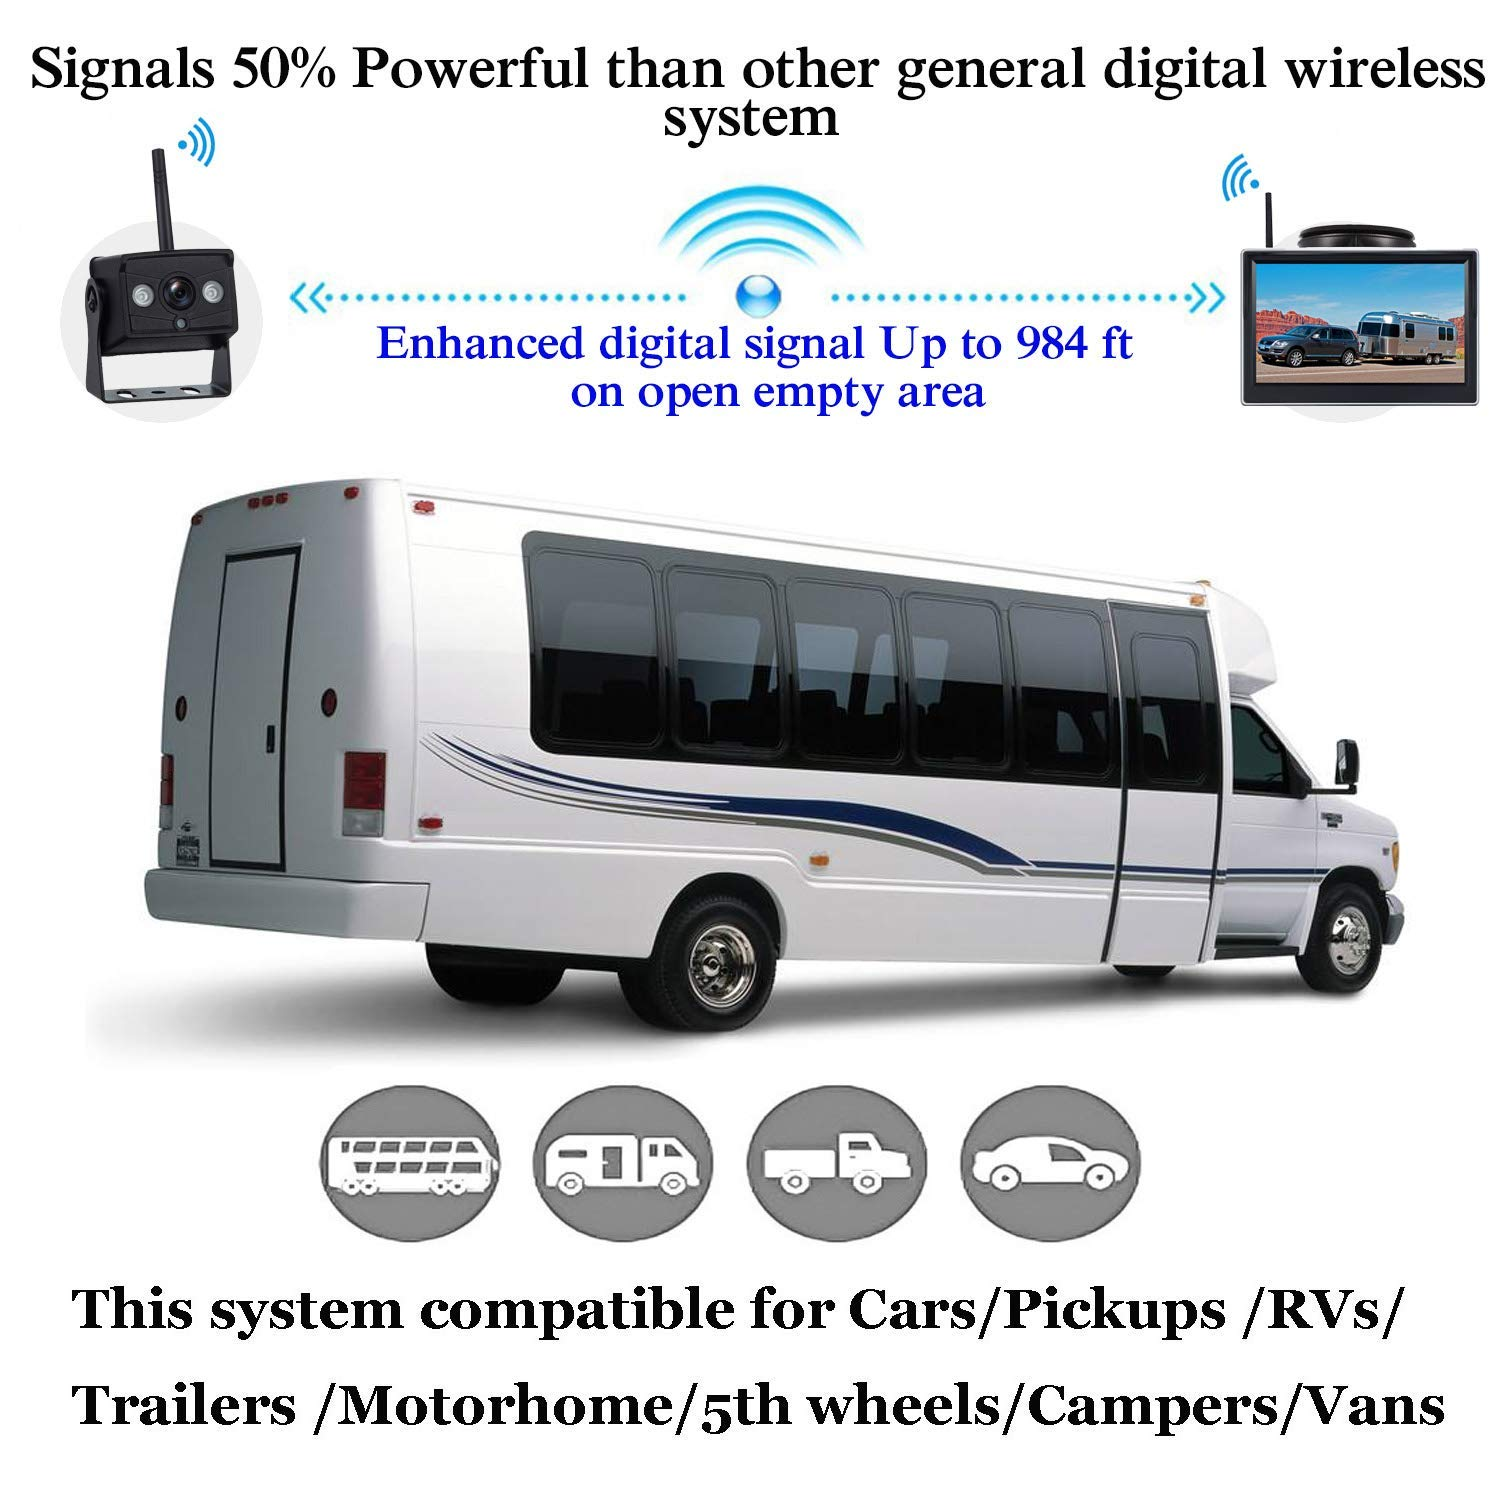 HD 720P Digital Wireless Backup Camera Kit,No Interference,IP69 Waterproof Wireless Rear View Camera 5 inch LCD Wireless Reverse Moniverse Monitor for Rv Truck Van Trailer Pickup A-5 SZWX